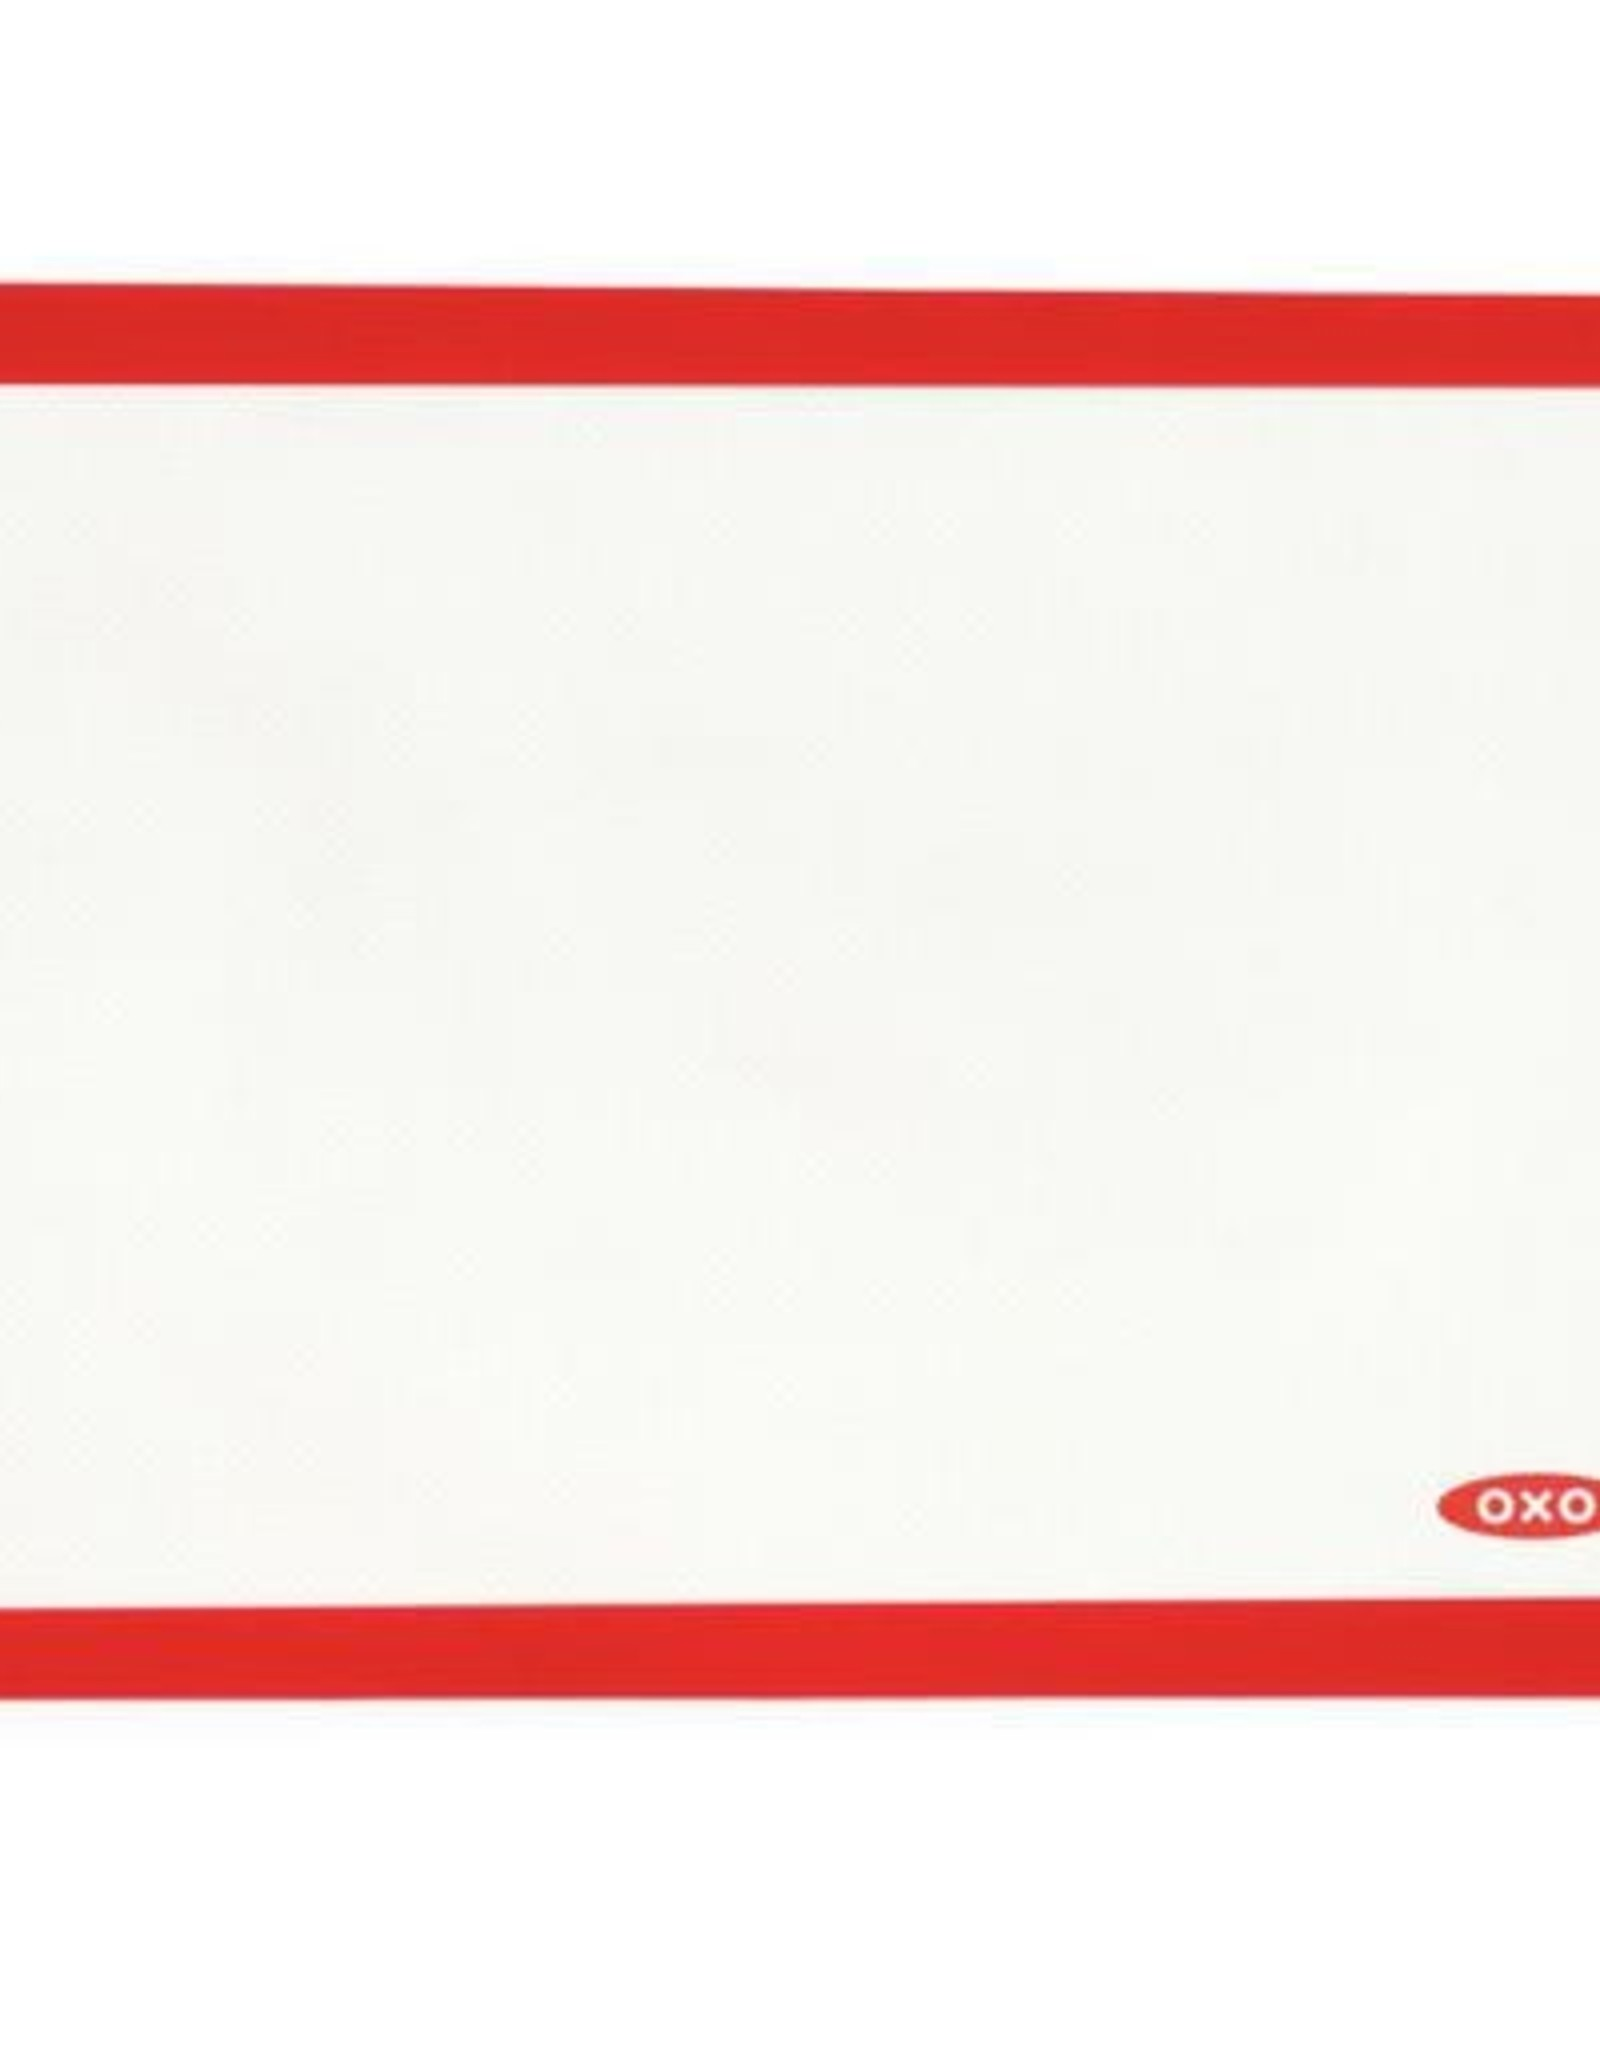 """OXO OXO Silicone Baking Mat, Red Trim 11.75x16.5"""""""